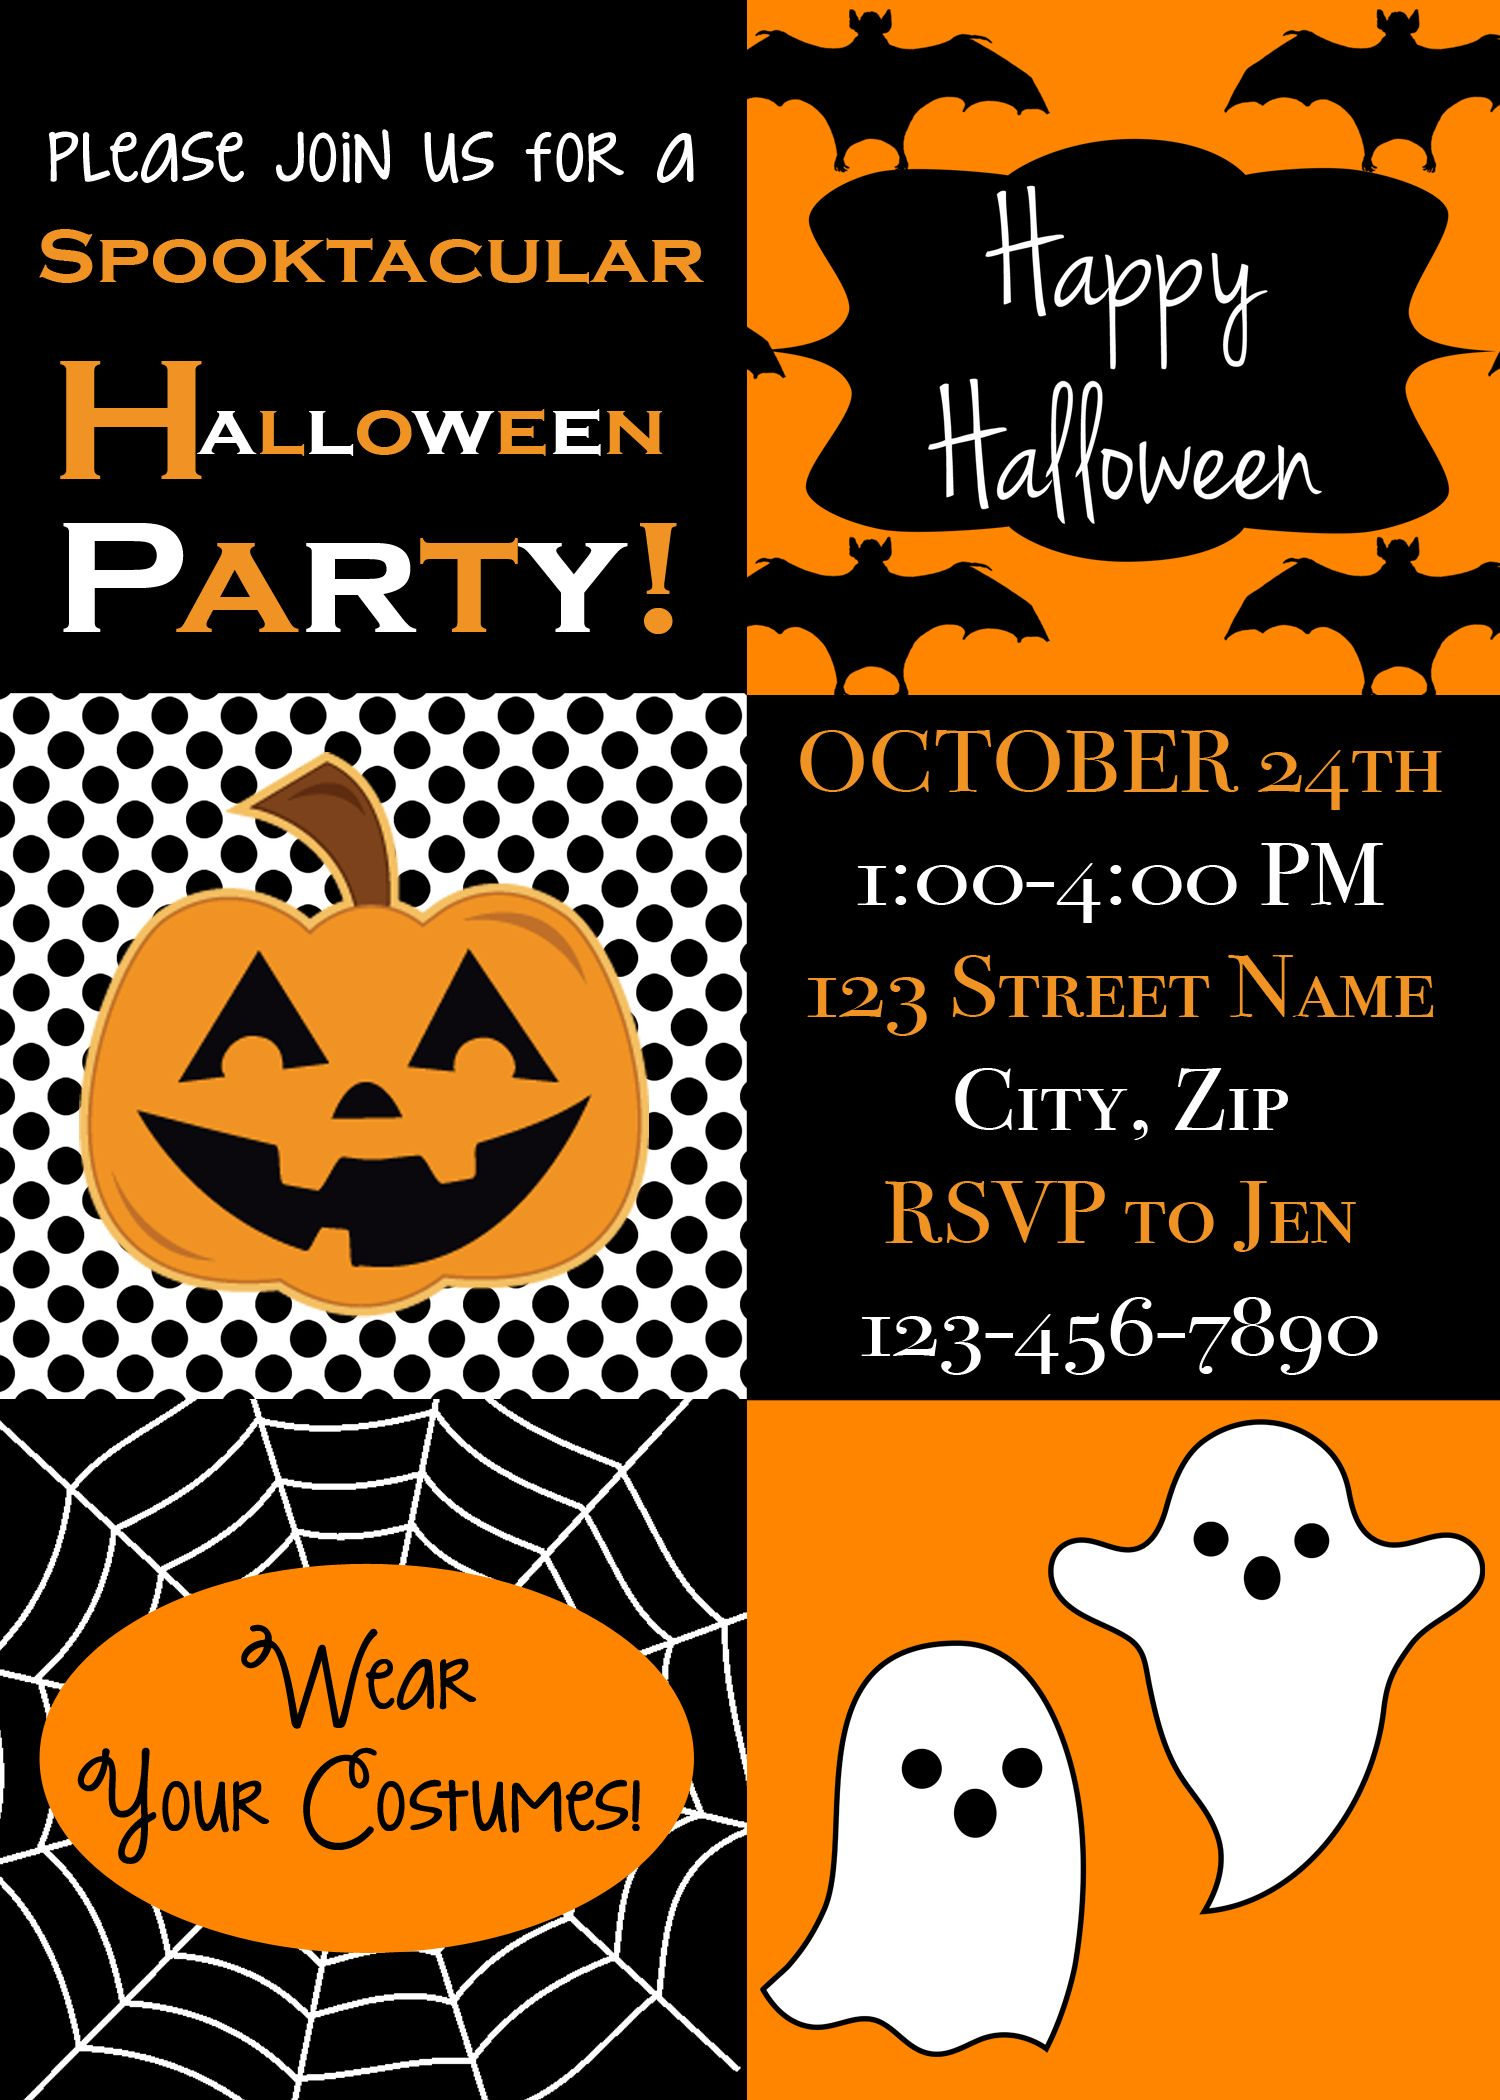 photograph relating to Halloween Invitations Printable identify Halloween Invitation, Halloween Get together Invites, Gown